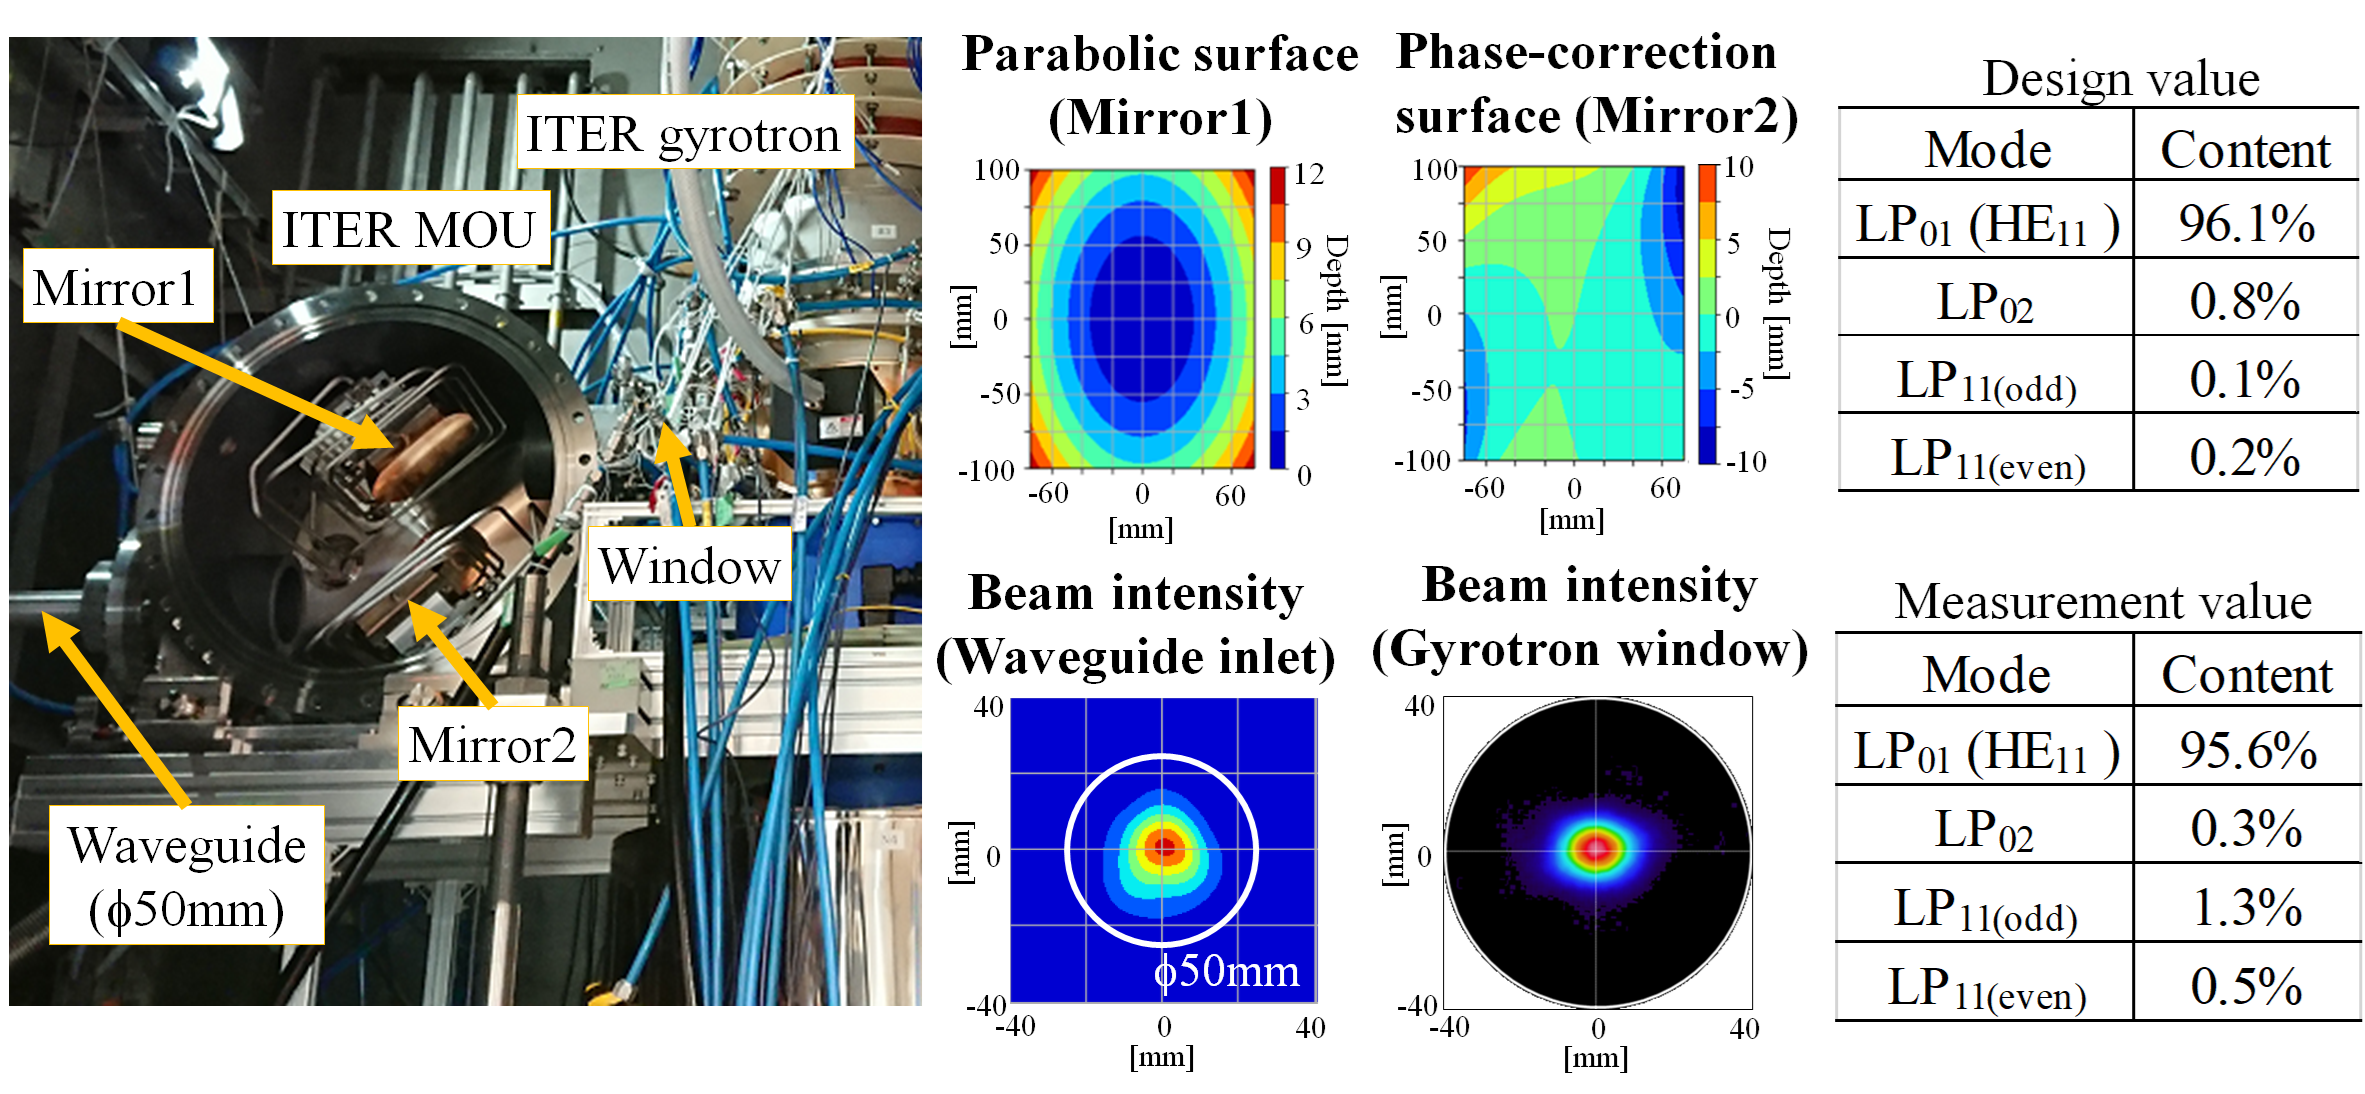 ITER relevant test combining ITER MOU and ITER gyrotron, ITER MOU and ITER relevant waveguides (50 mm diameter). The gyrotron beam was coupled to the HE11 mode by two MOU mirrors with parabolic and phase correction surfaces.